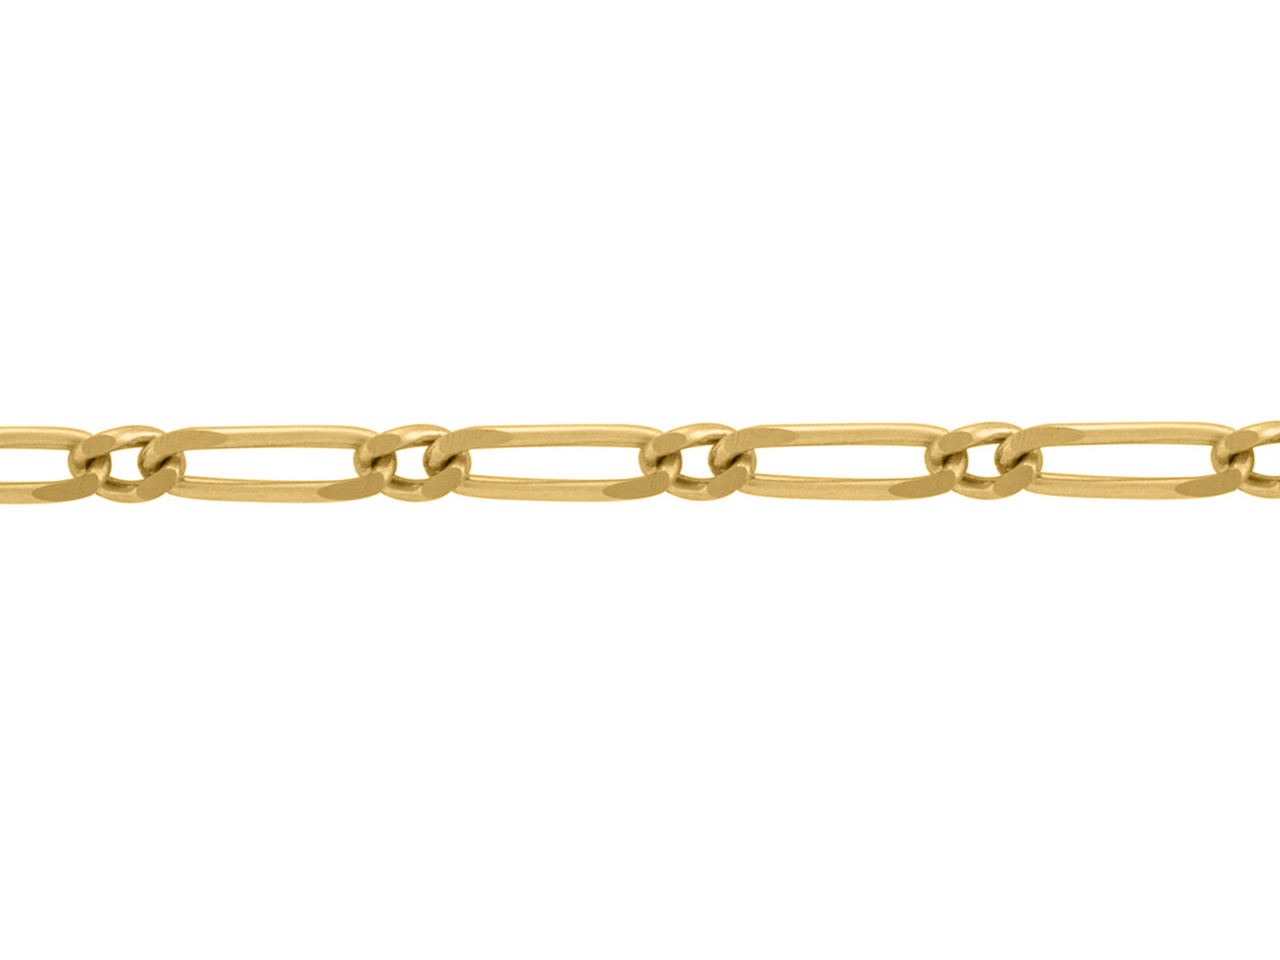 Chaine Figaro alternée 1/1, 3 mm, Or jaune 18k. Réf. 00958